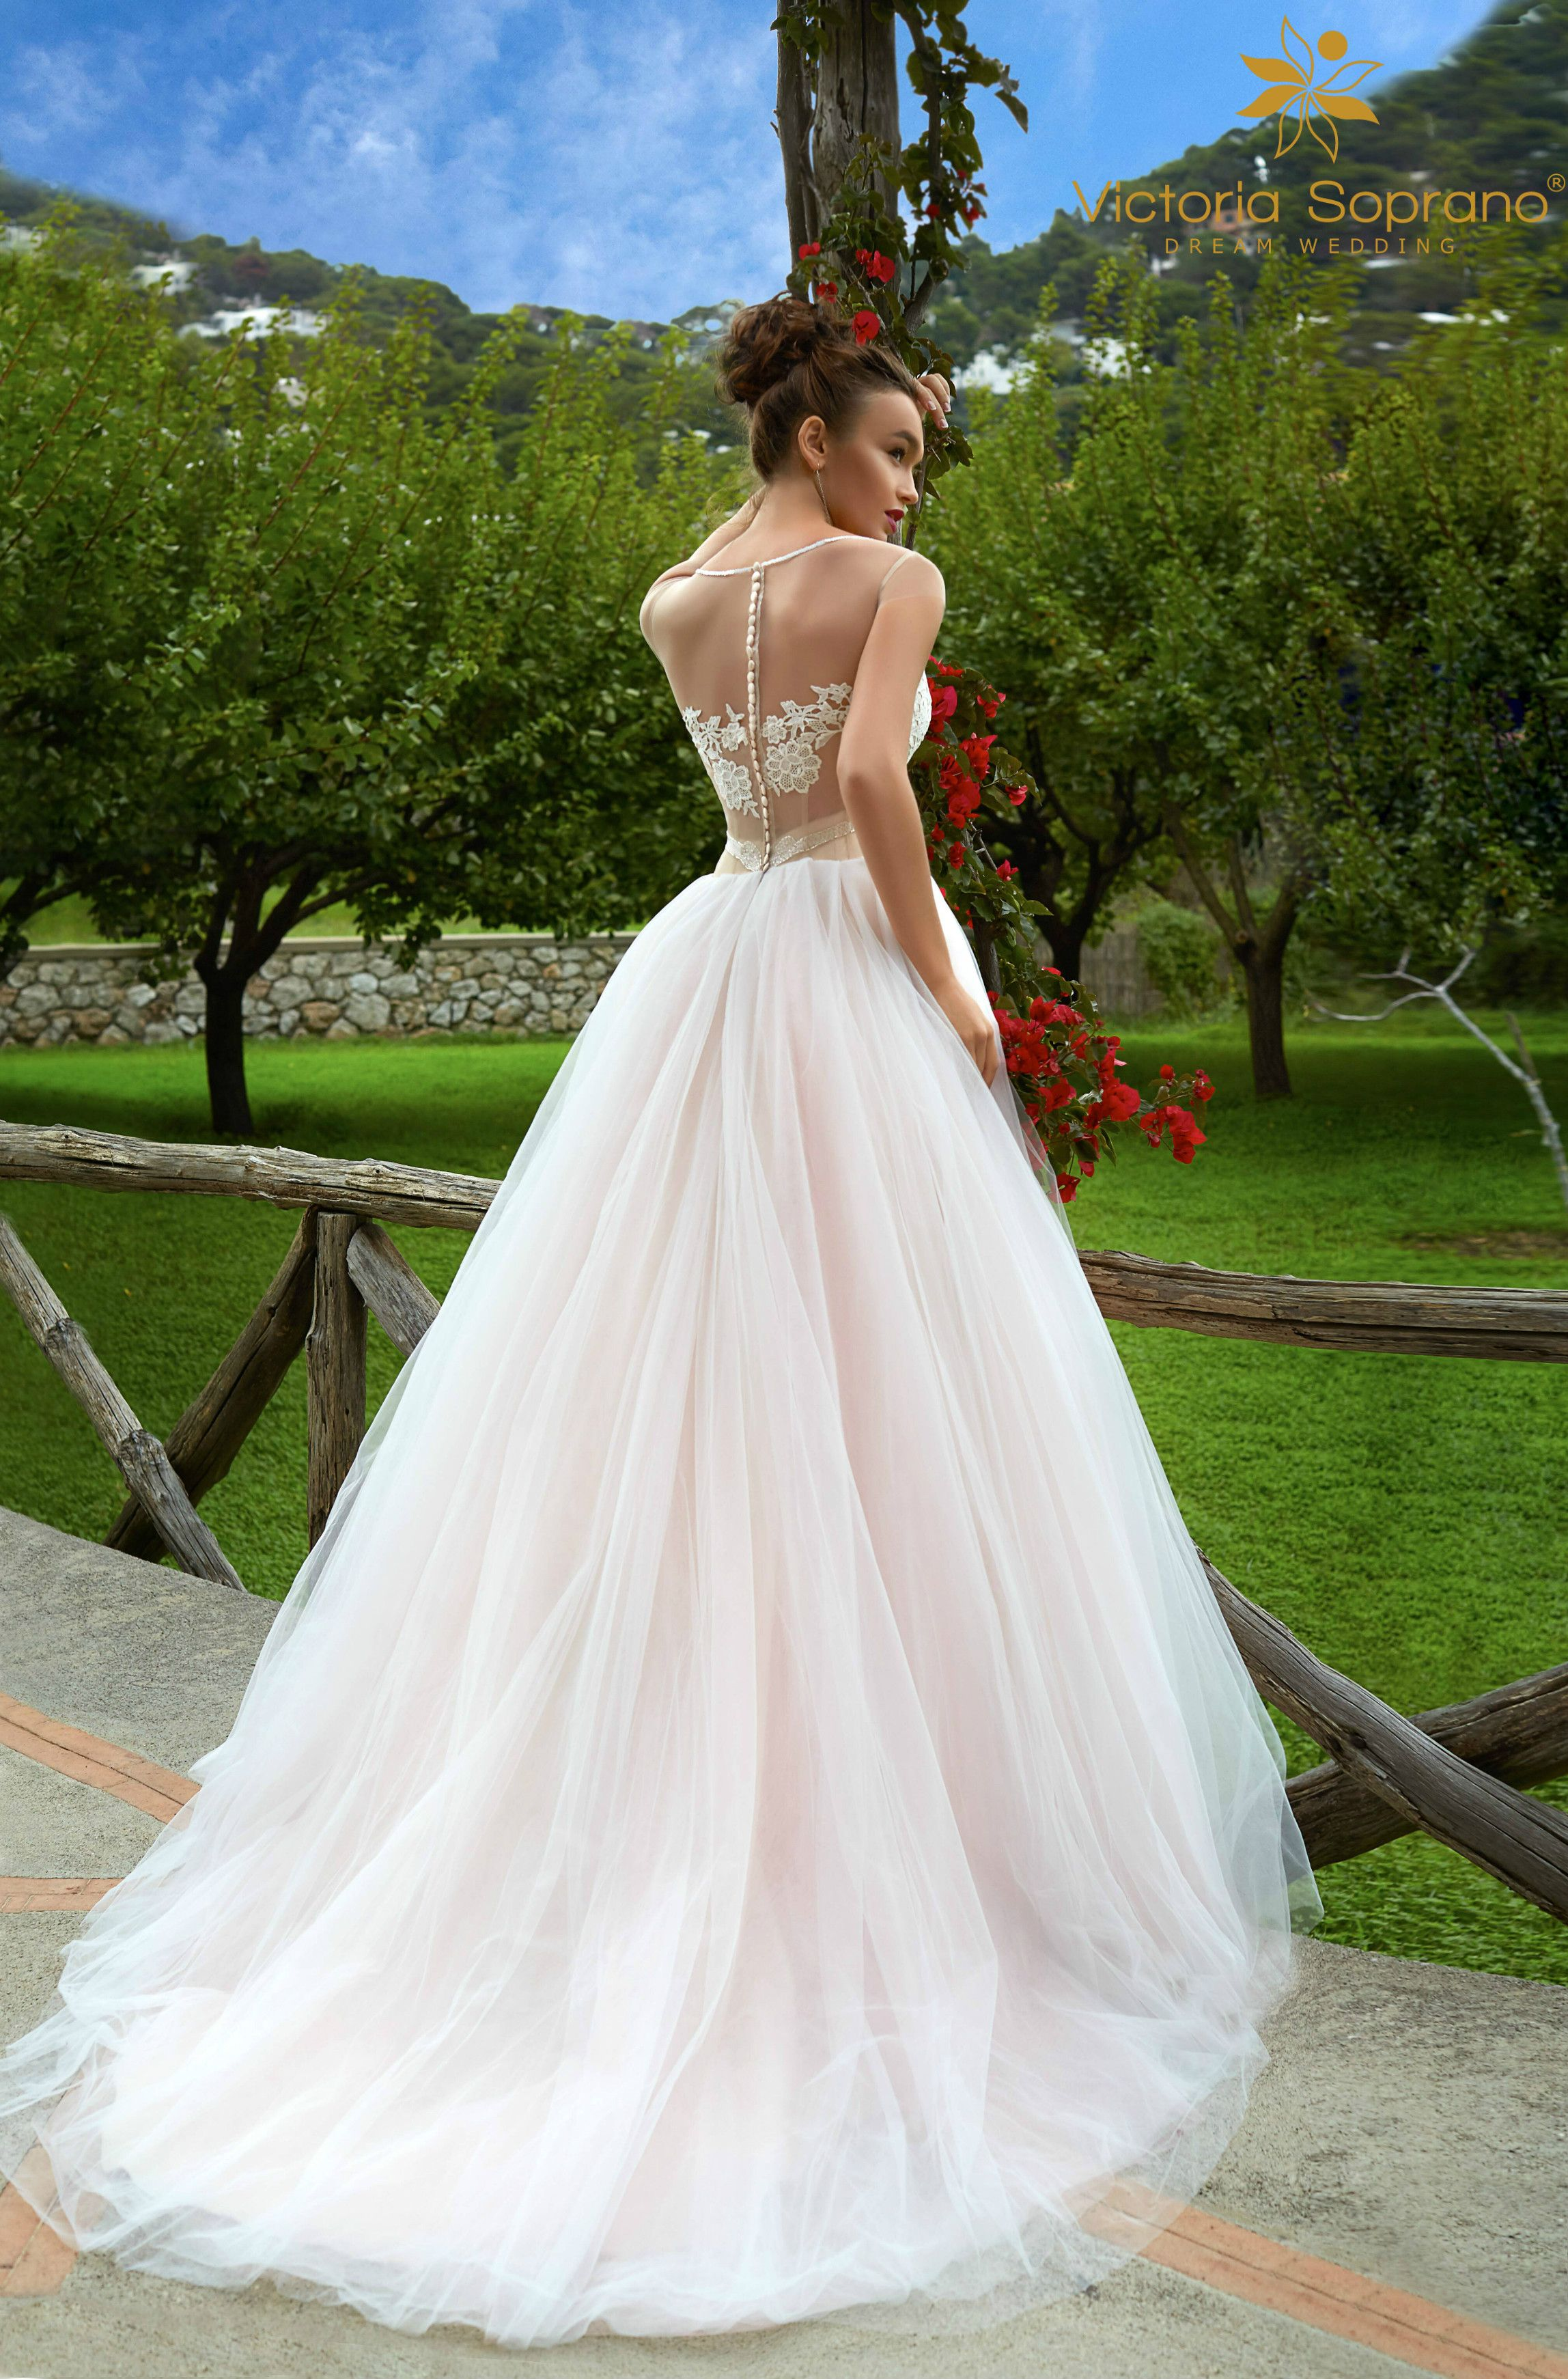 Lace wedding dress tulle november 2018 Godgess gown Climentine  Weddings  Pinterest  Gowns Wedding